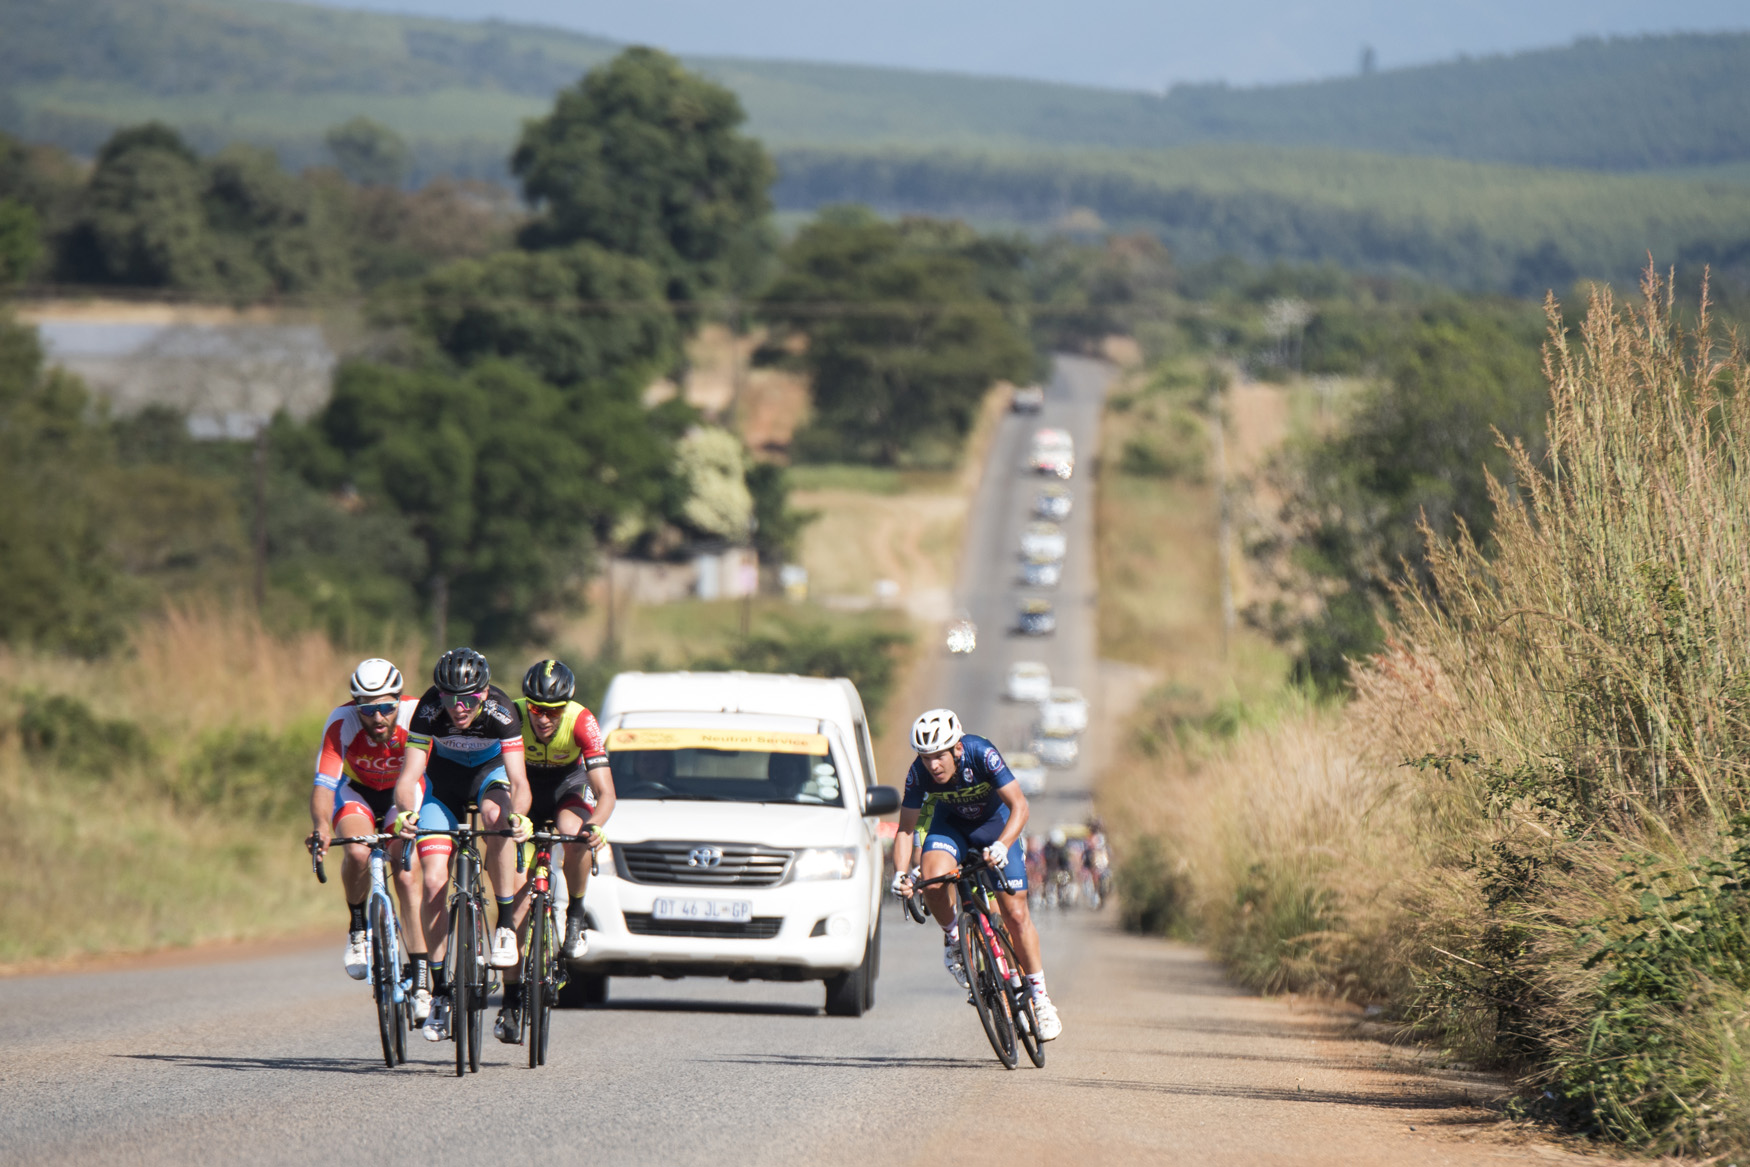 Jean-Pierre Lloyd (Officeguru Racing) heads the lead pack including Dominic Schils (Velo Schils), Herman Keller (NCCS Namibia) and David Maree (Proud Beginners) from Tzaneen to Old Coach Road, Mt. Agatha, on Stage 3 of the 2019 Tour de Limpopo (UCI 2.2) from 14-18 May © Tour de Limpopo/Andrew Mc Fadden